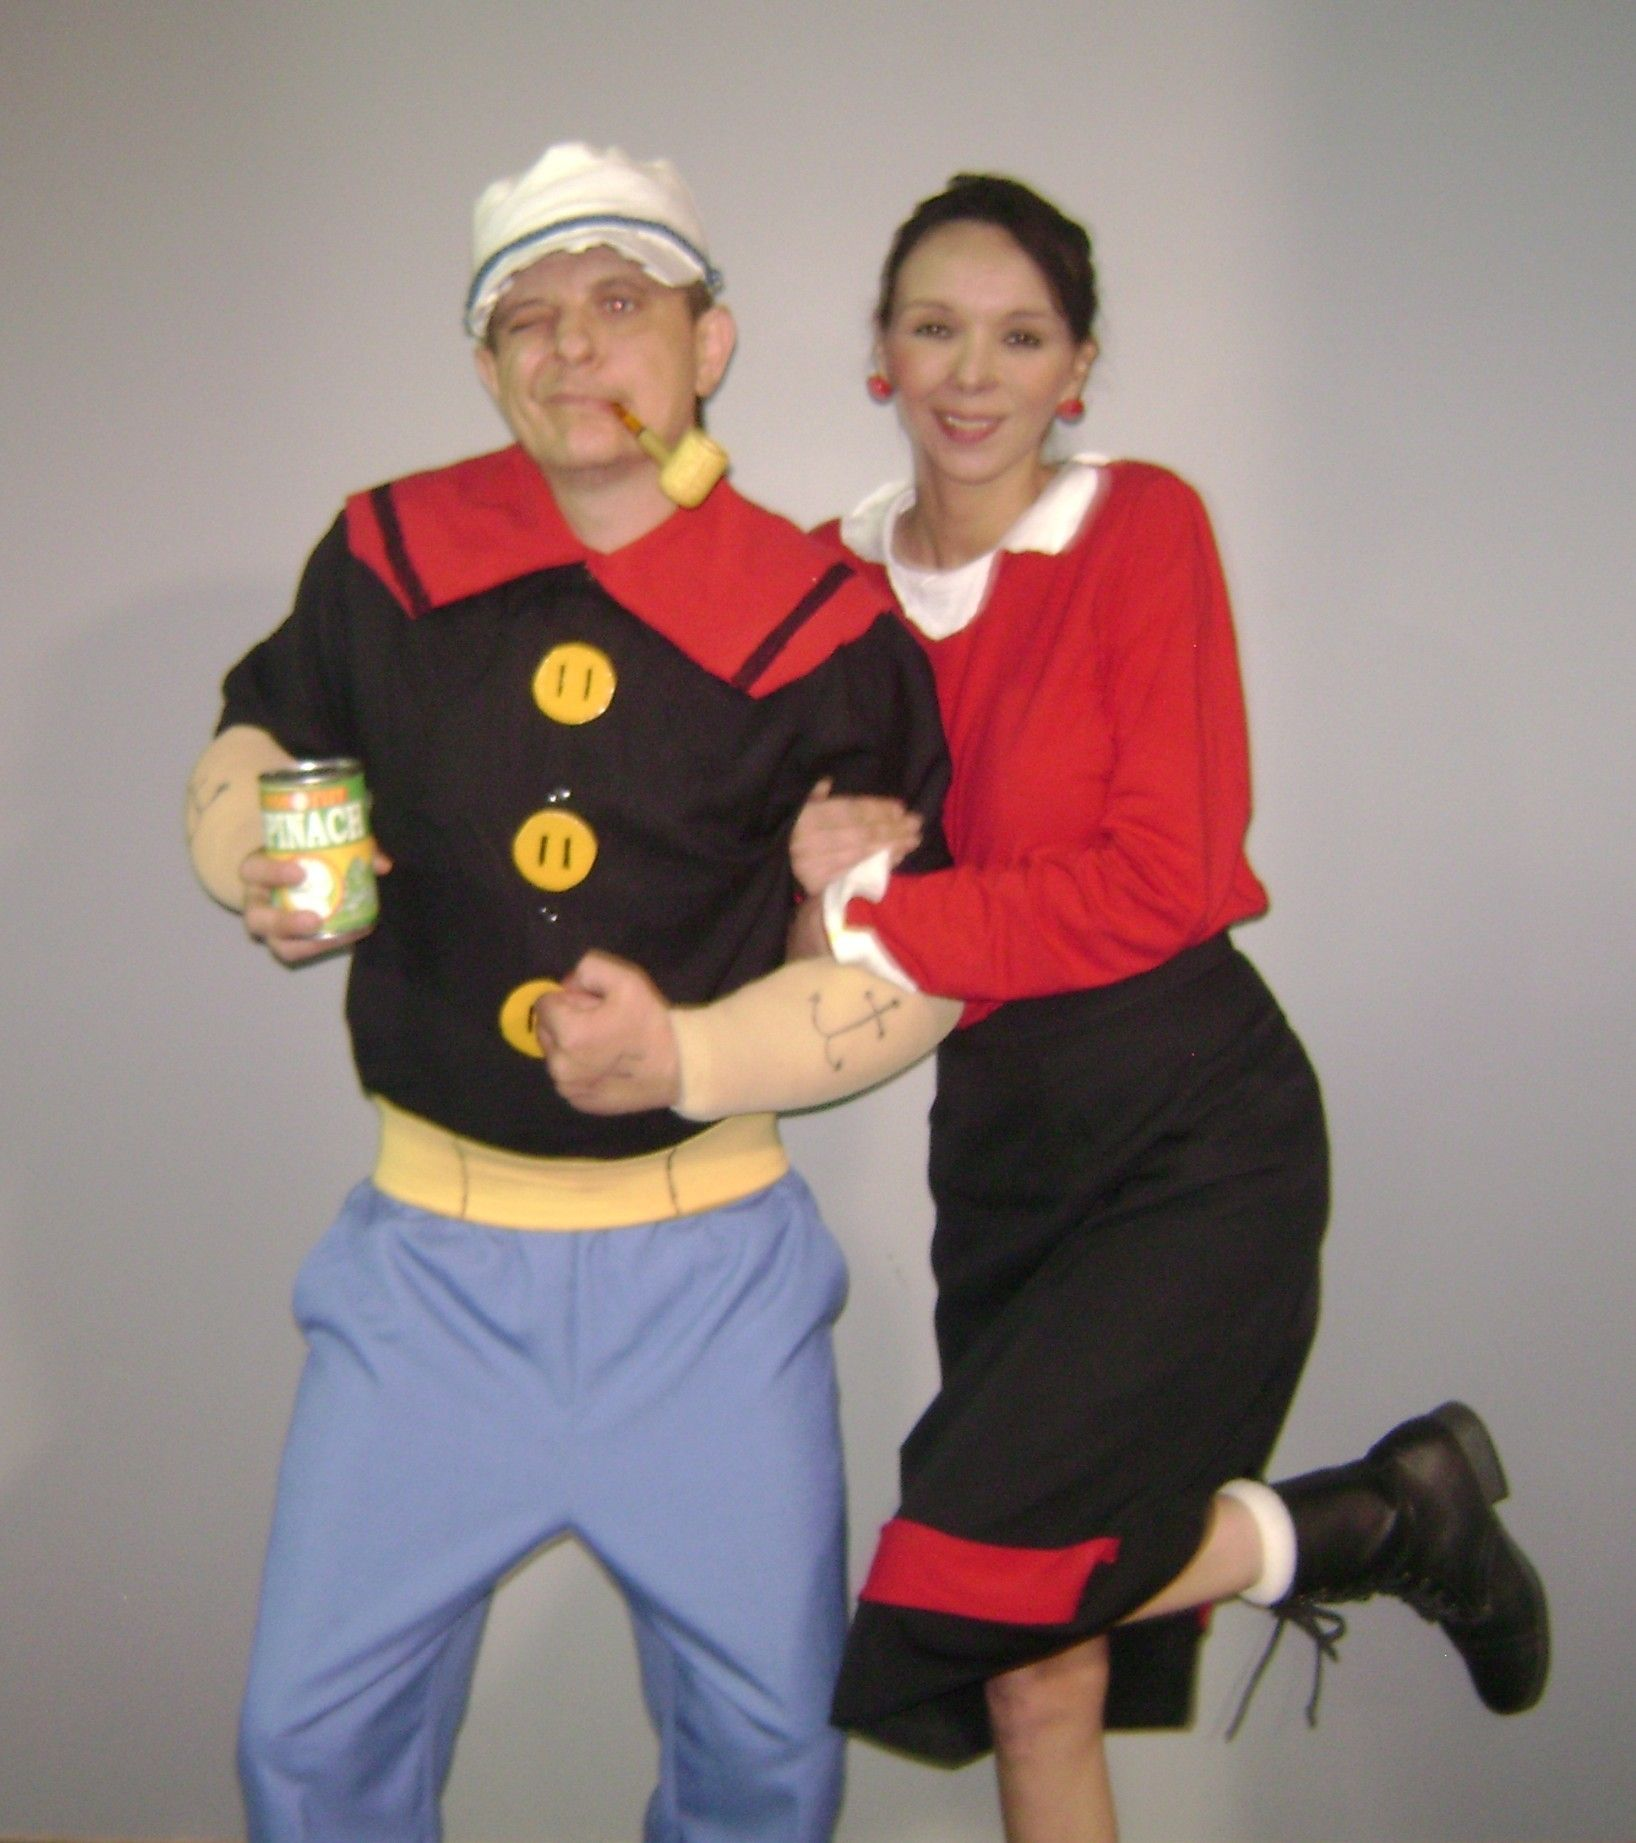 Popeye olive oyl costume famous couple theme our weekly 25 popeye olive oyl costume famous couple theme solutioingenieria Image collections